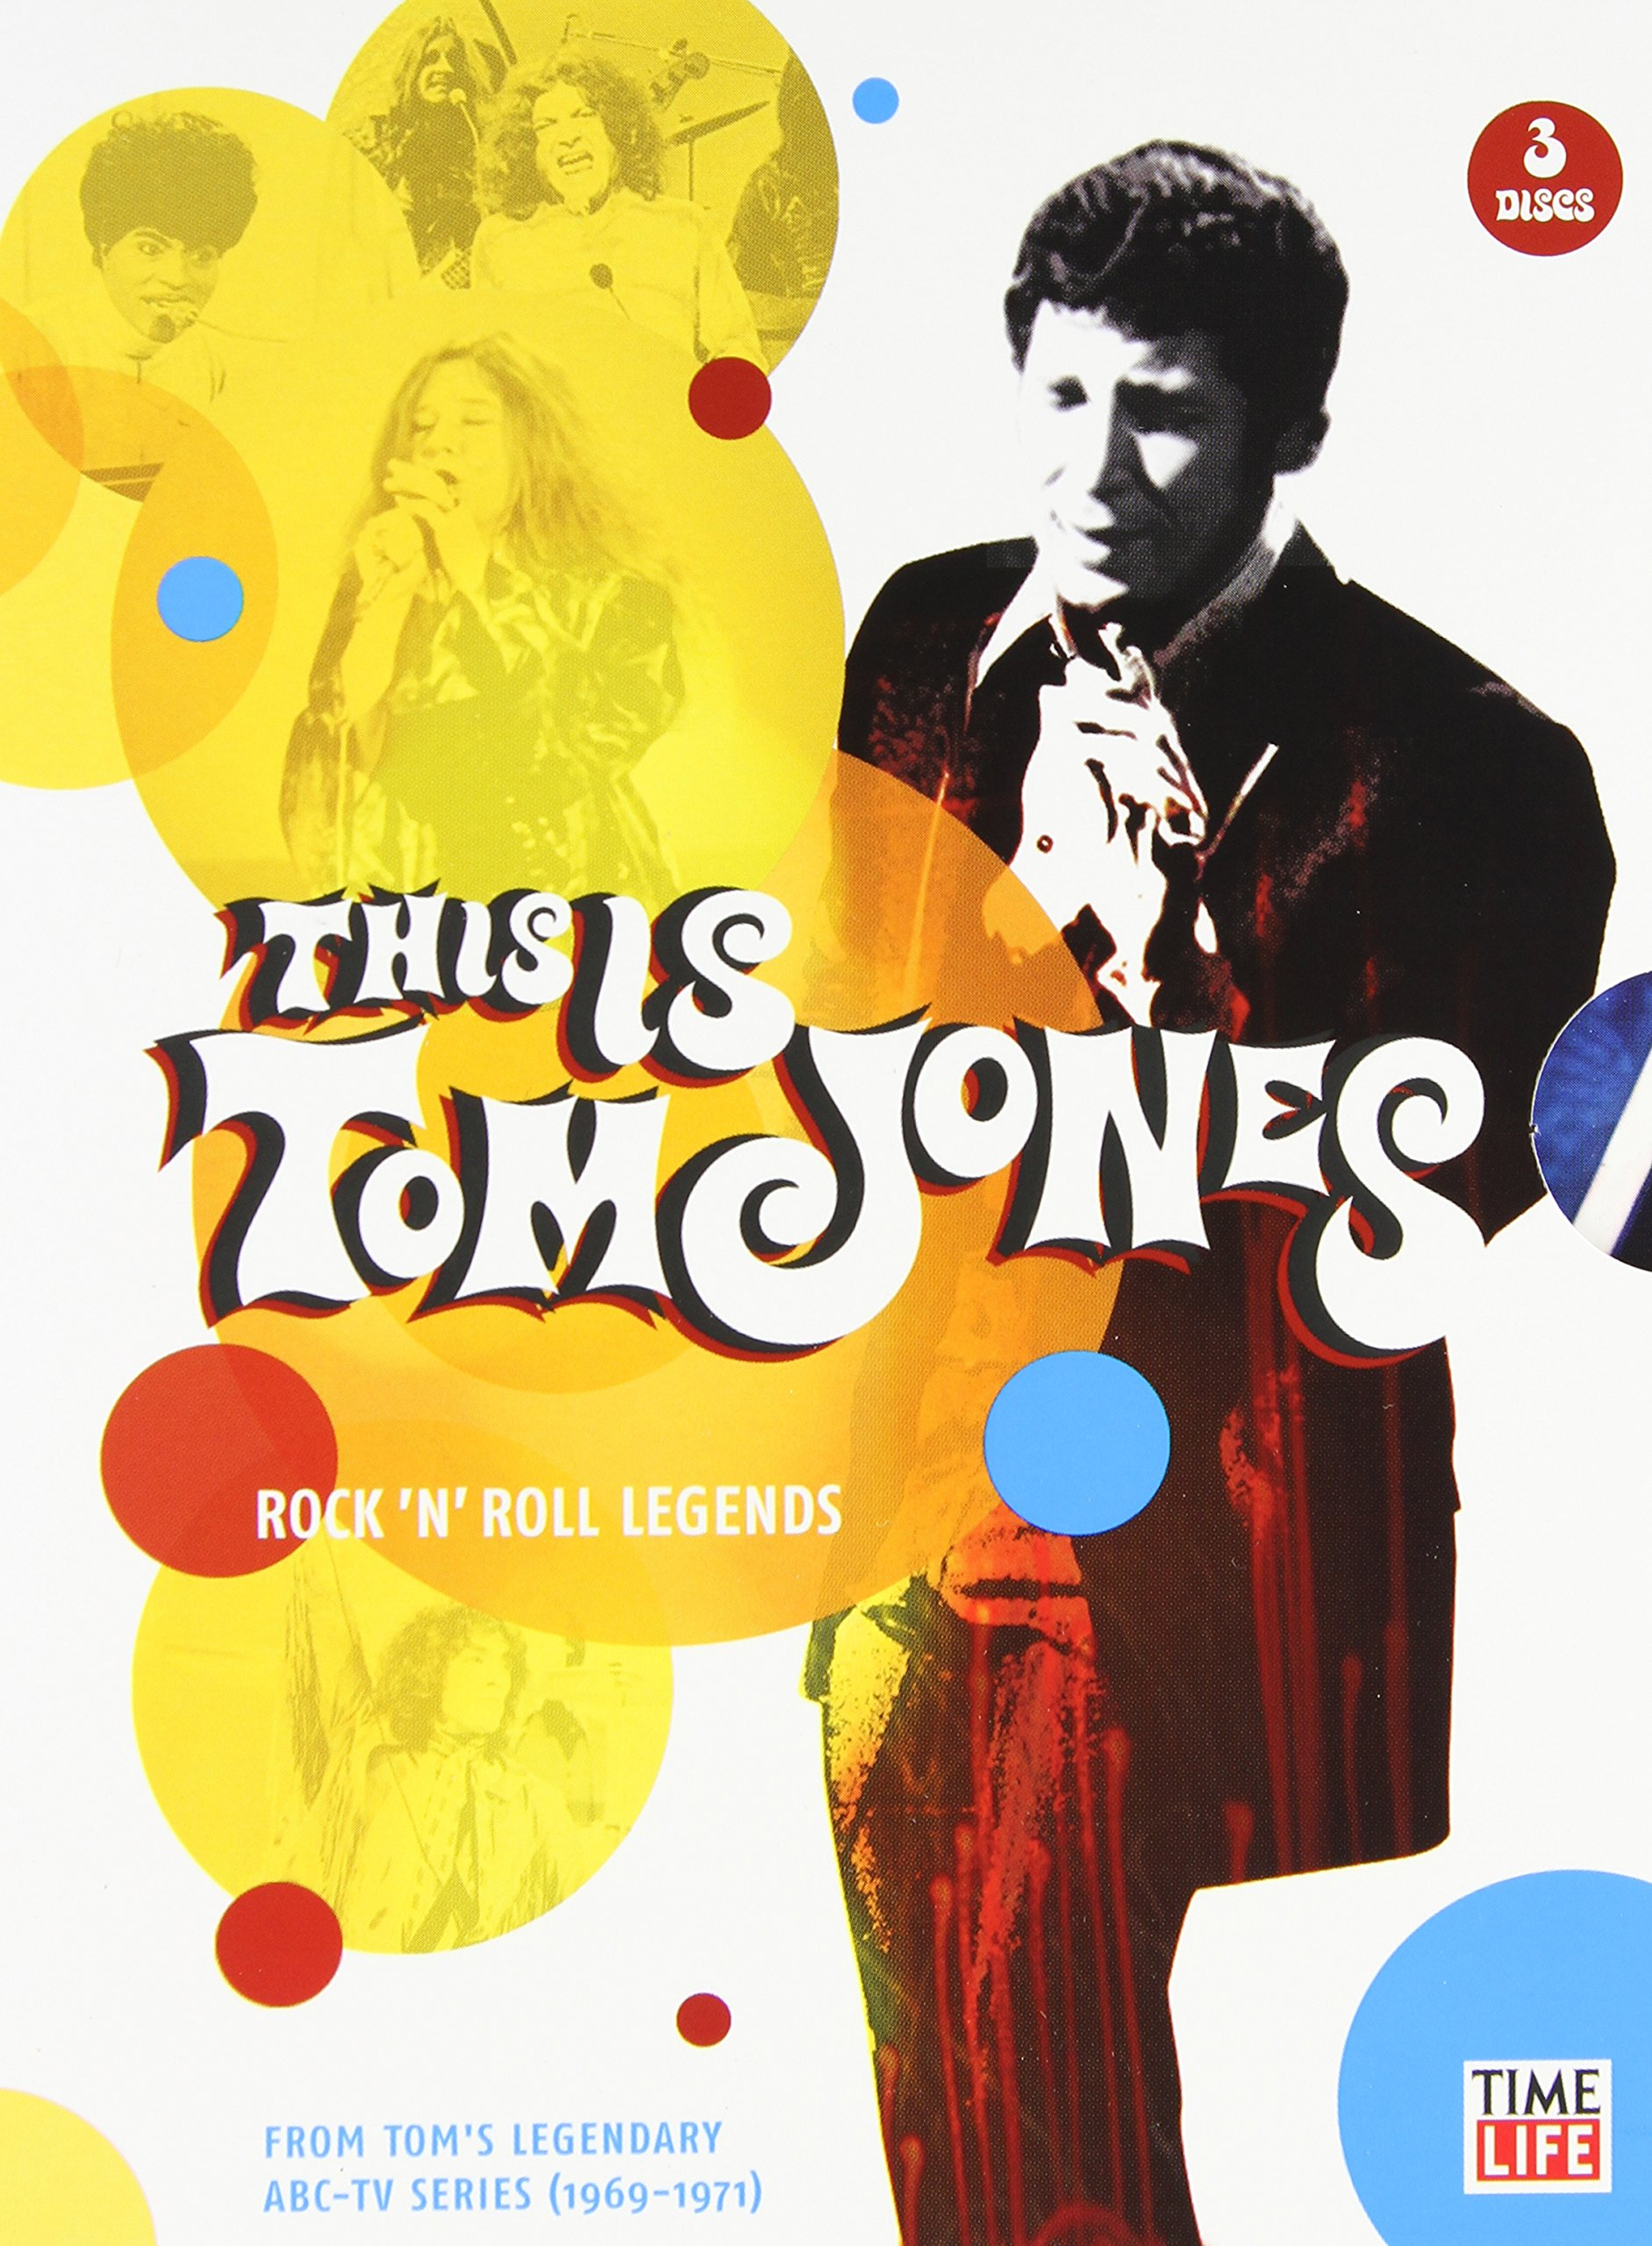 This is Tom Jones by WEA DVD